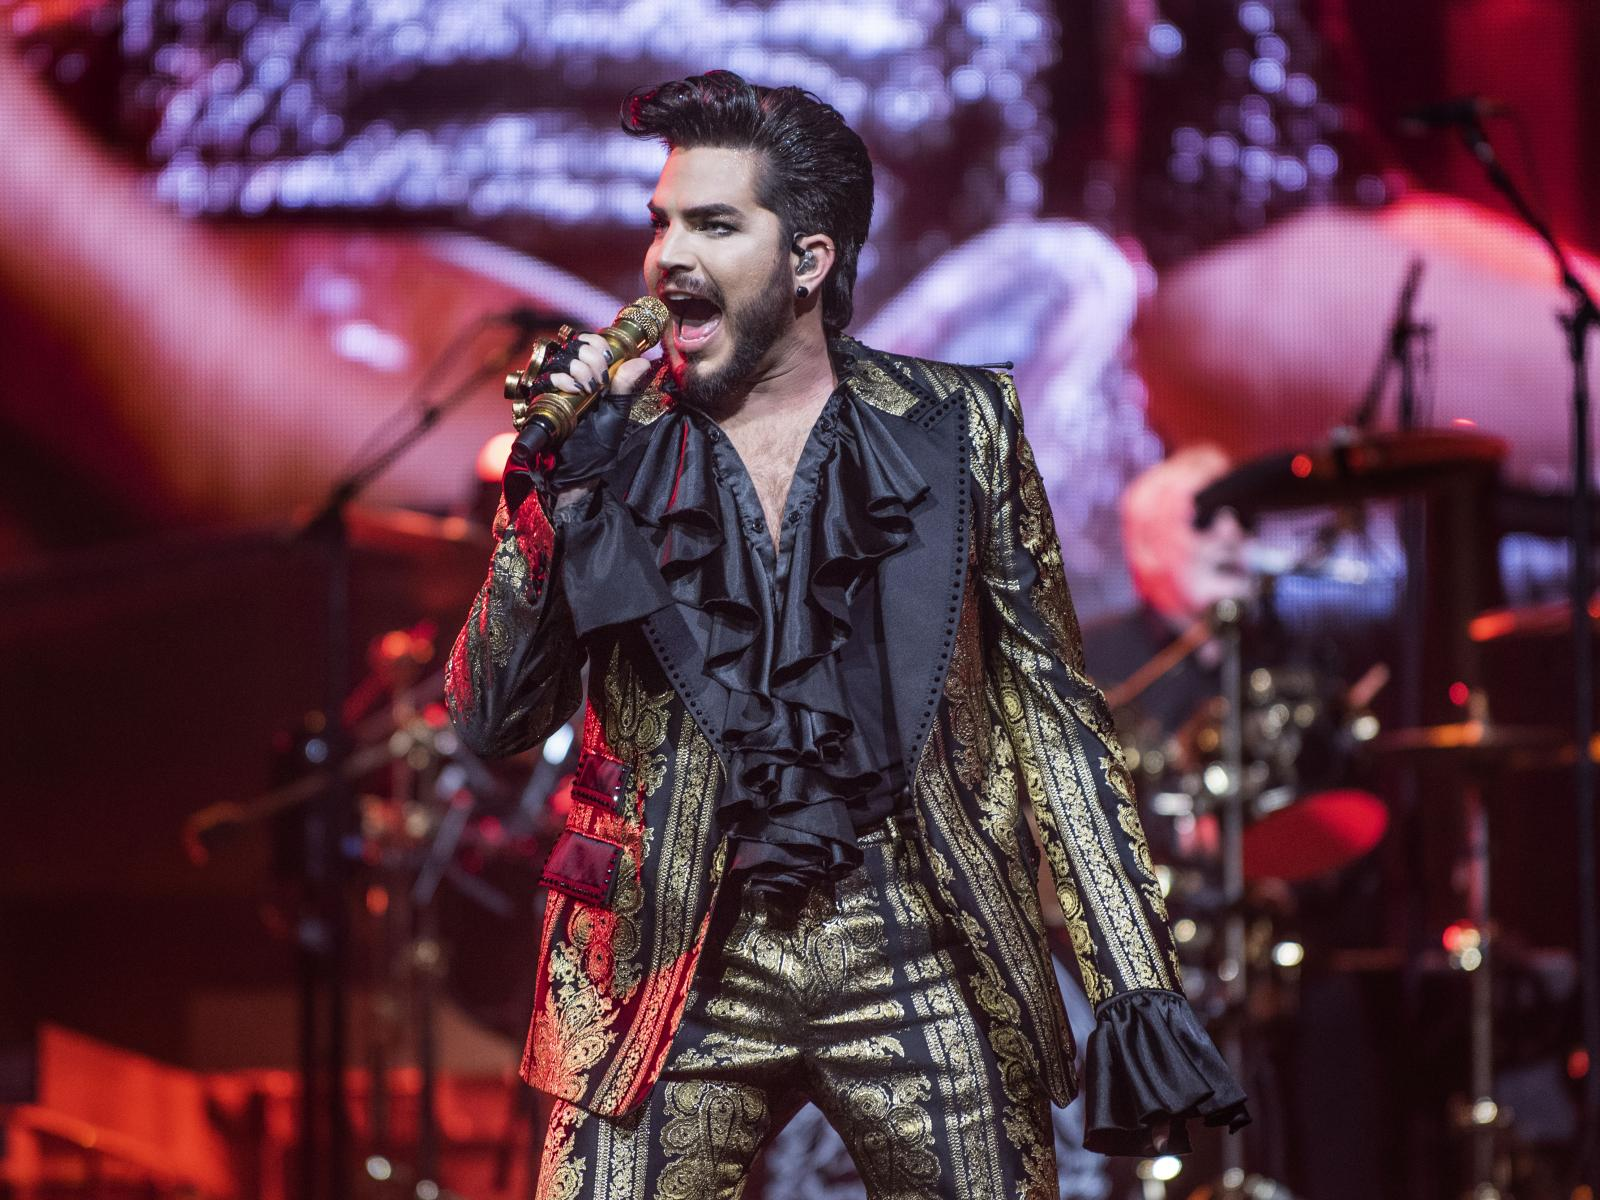 Queen singer Adam Lambert performs during the band's first of two nights at the Forum in Los Angeles on Friday, July 19, 2019. (Photo by Nick Agro, Contributing Photographer)